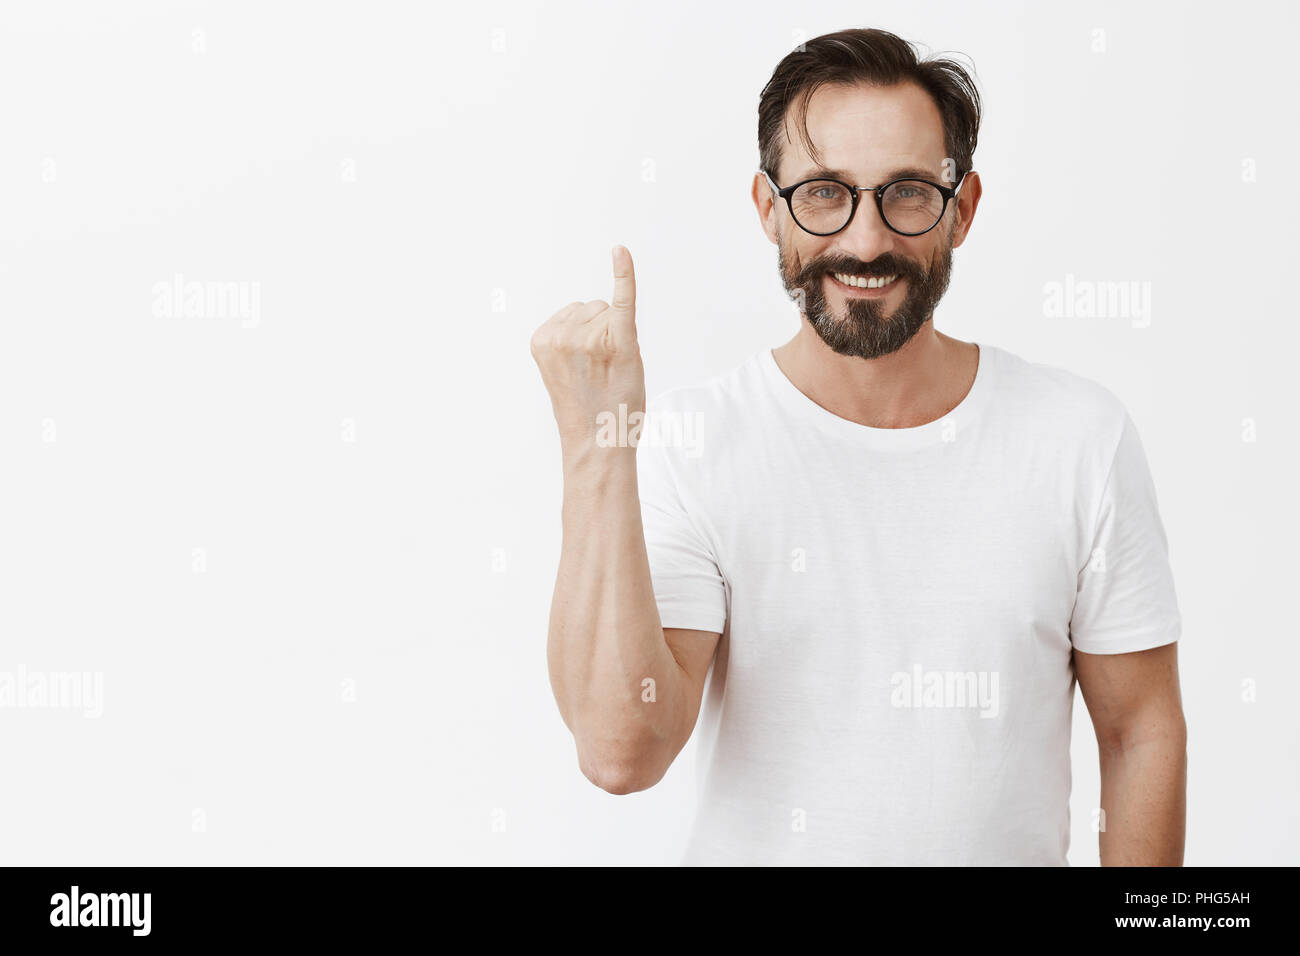 Pinky swear. Portrait of friendly charming adult man in stylish glasses and white t-shirt showing finger and smiling broadly at camera, making promise or make it up with friend over gray background - Stock Image